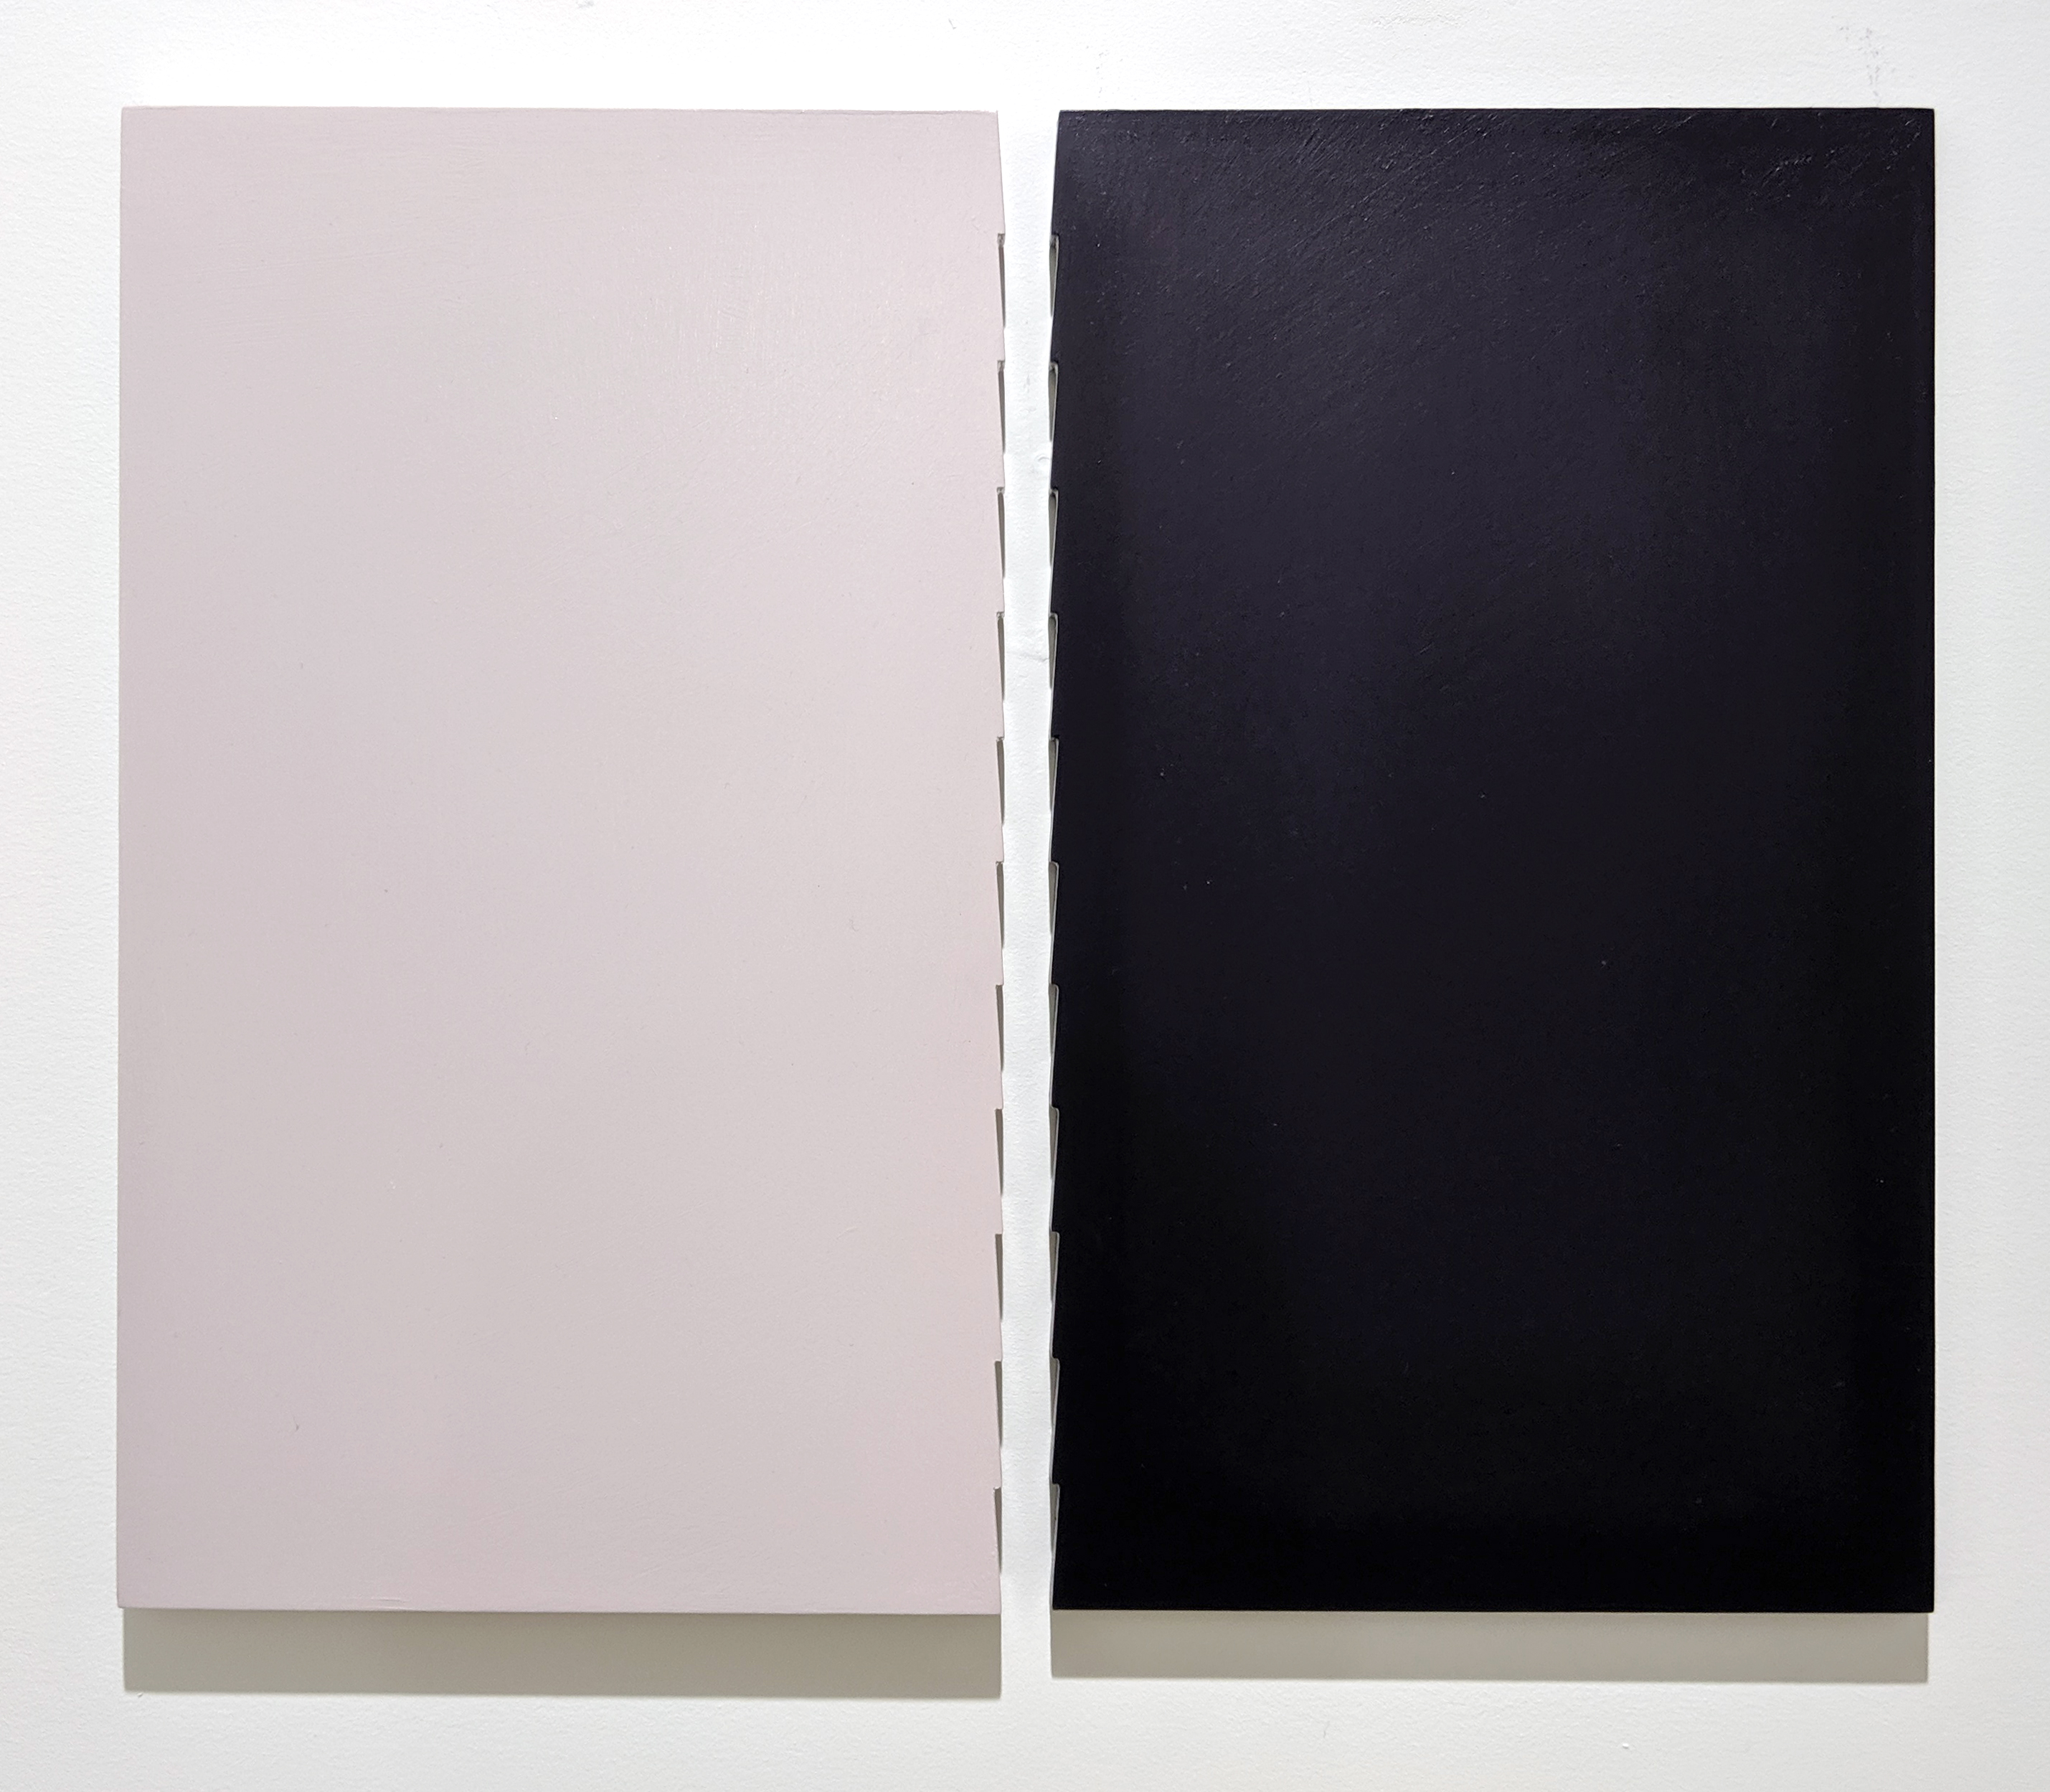 Oil on panel 14.63 x 14.63 inches, each panel (37.1 x 44.5 cm, each panel - Marc Straus Gallery